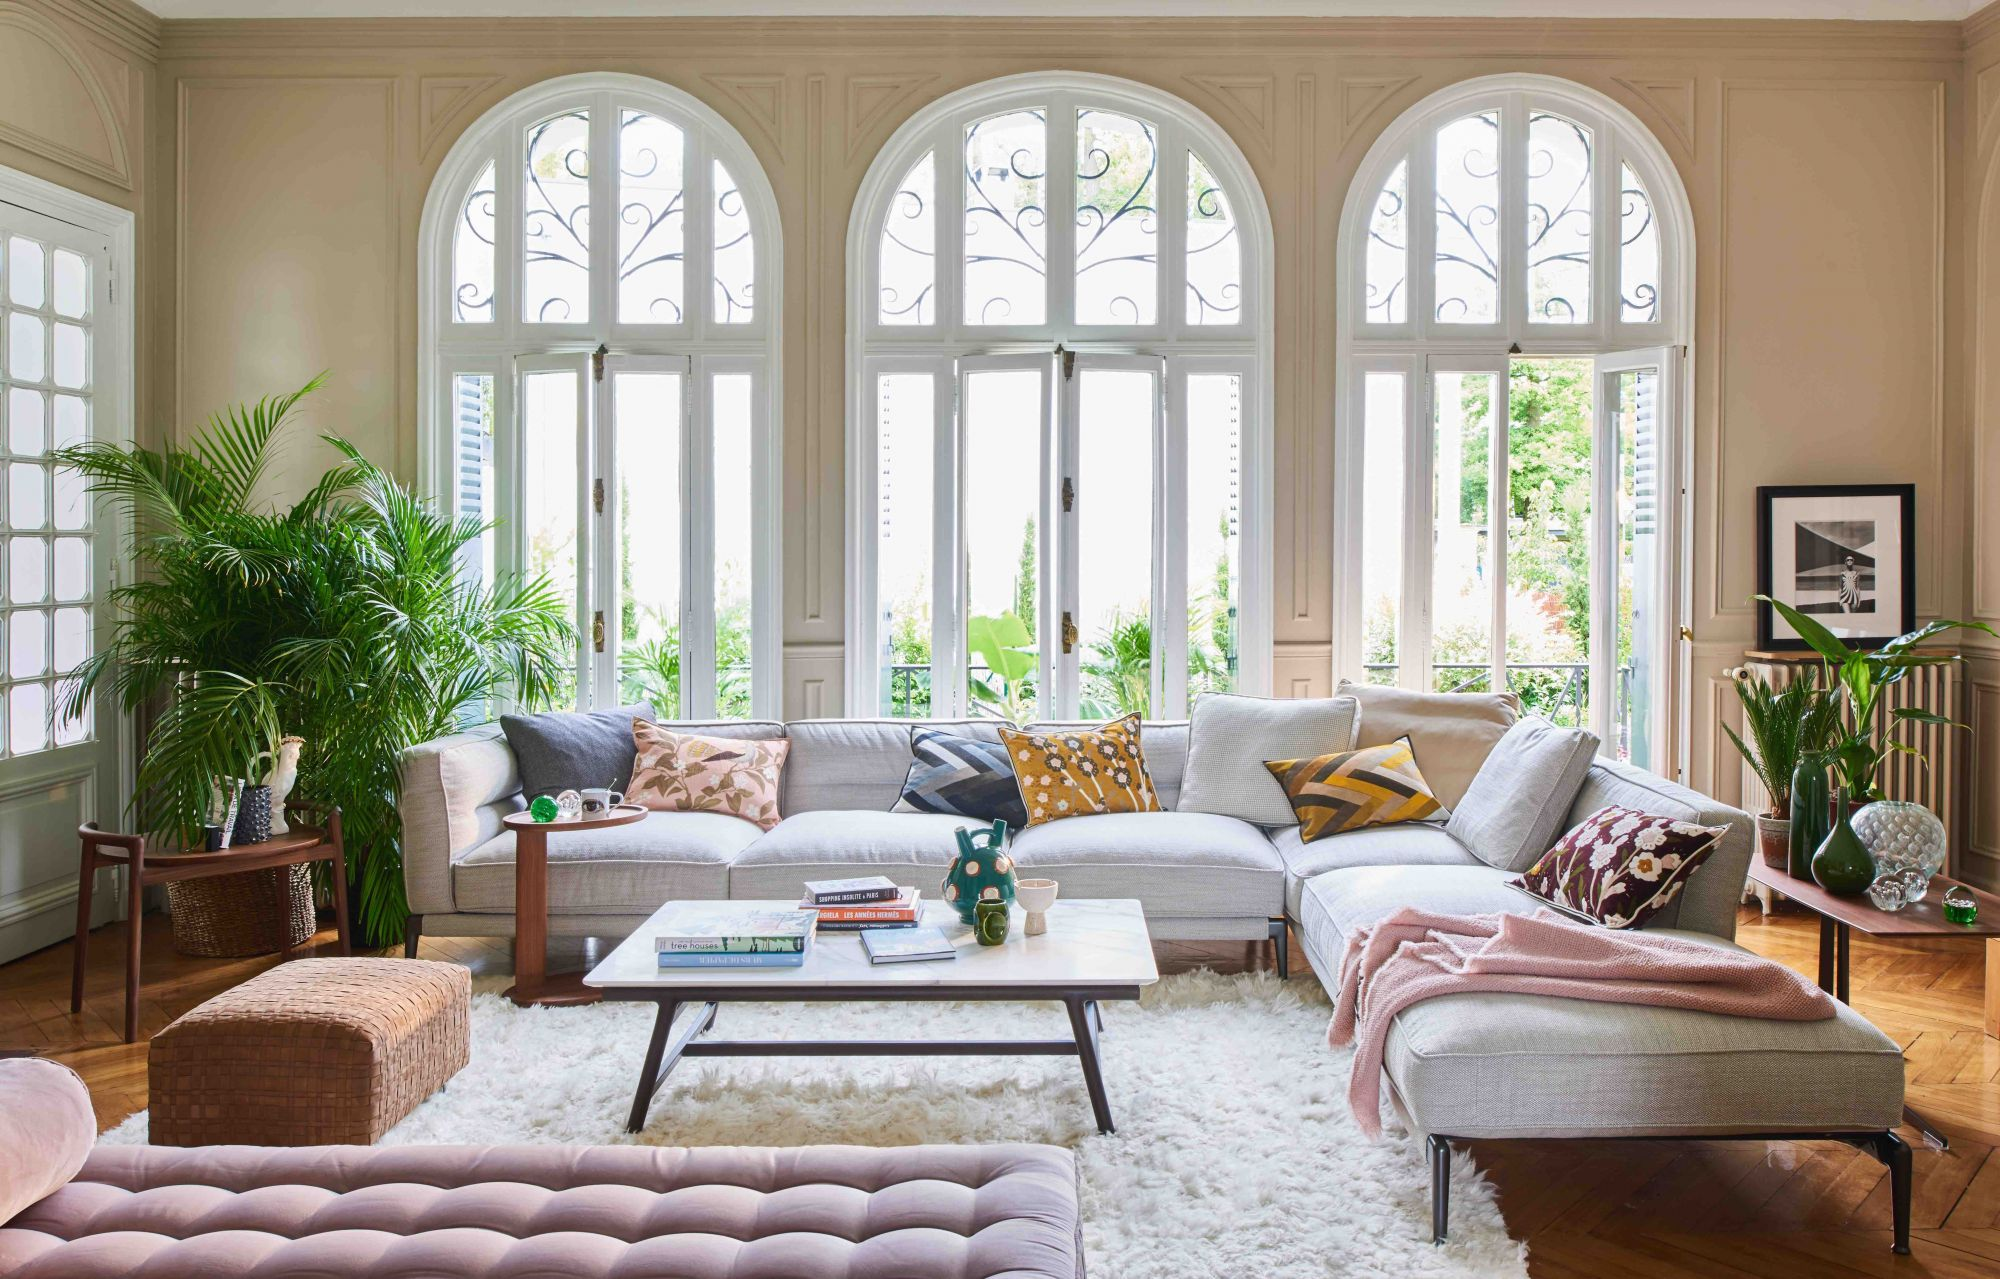 Home Tour: This Historic French Villa Gets An Elegant And Colourful New Look